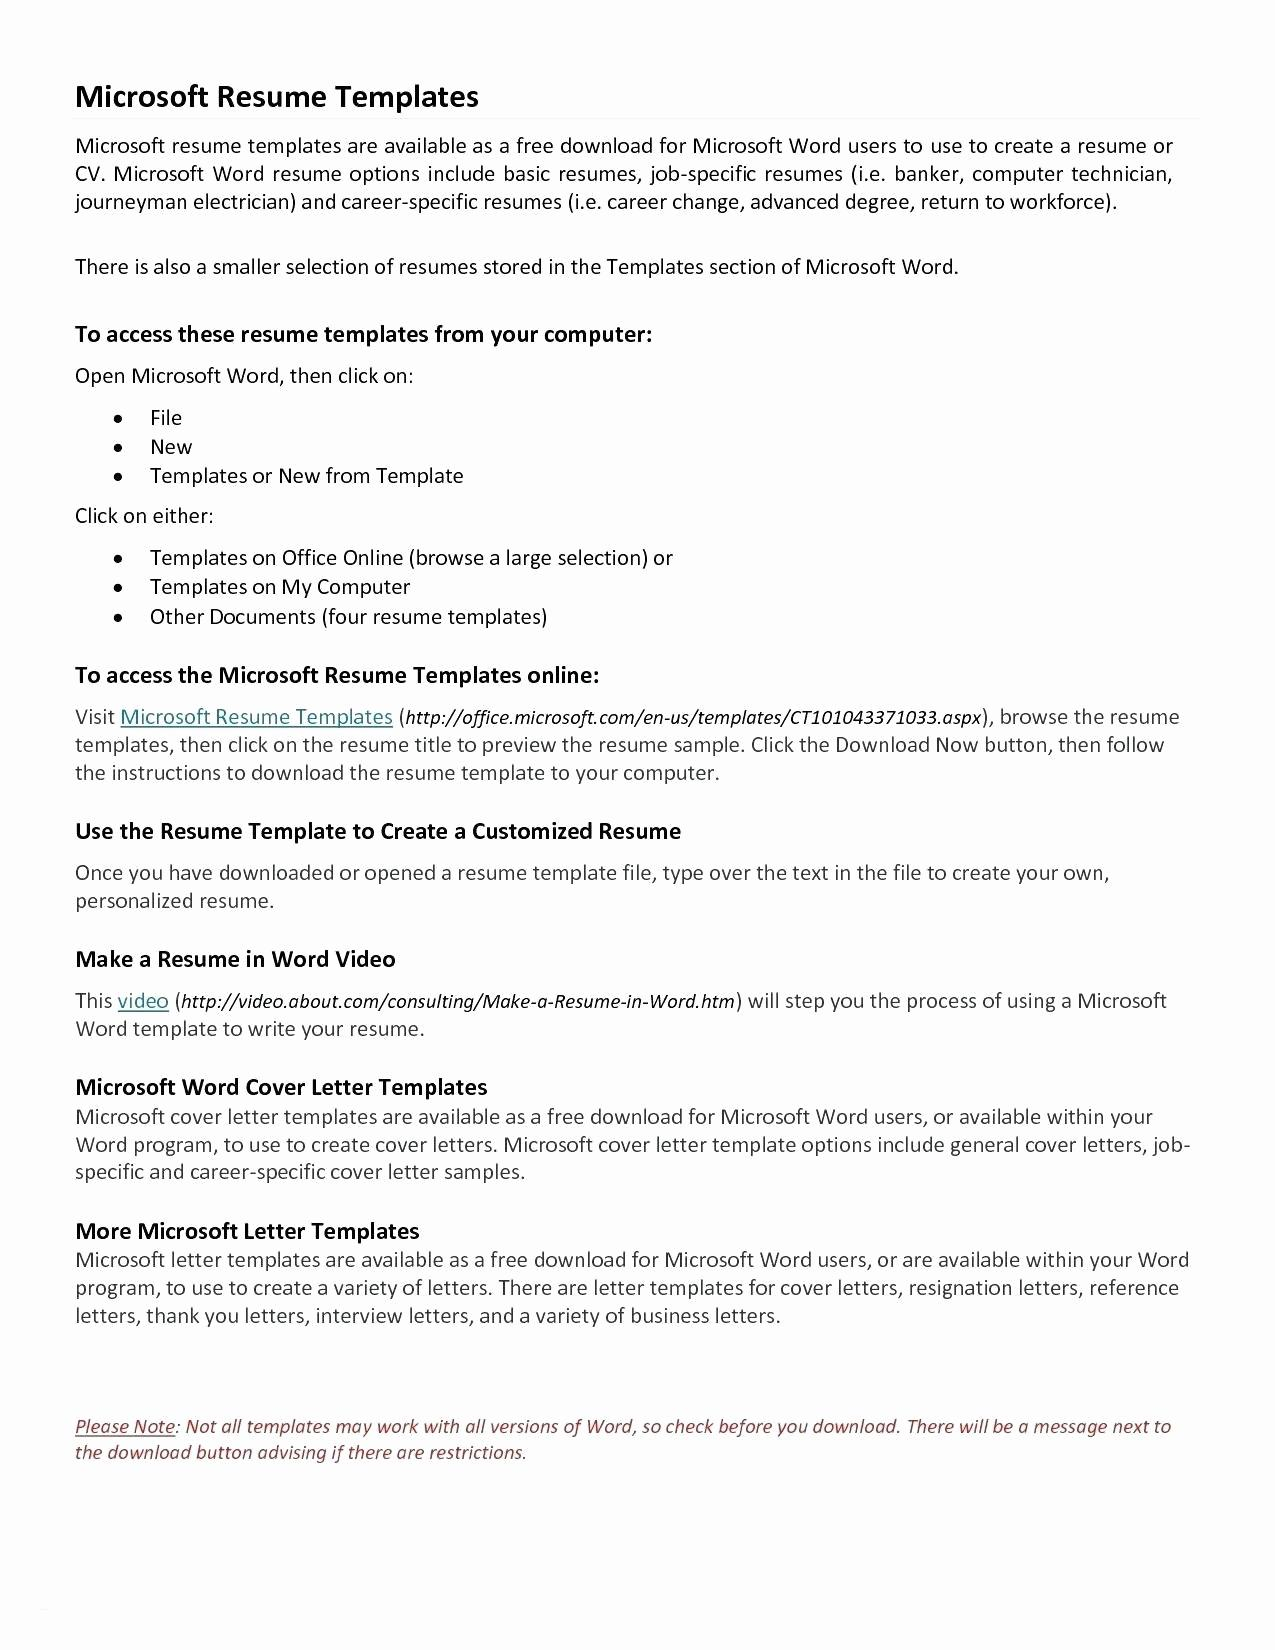 Microsoft Word Templates Resume - Free Resume Templates Word Luxury Elegant Microsoft Word Resume